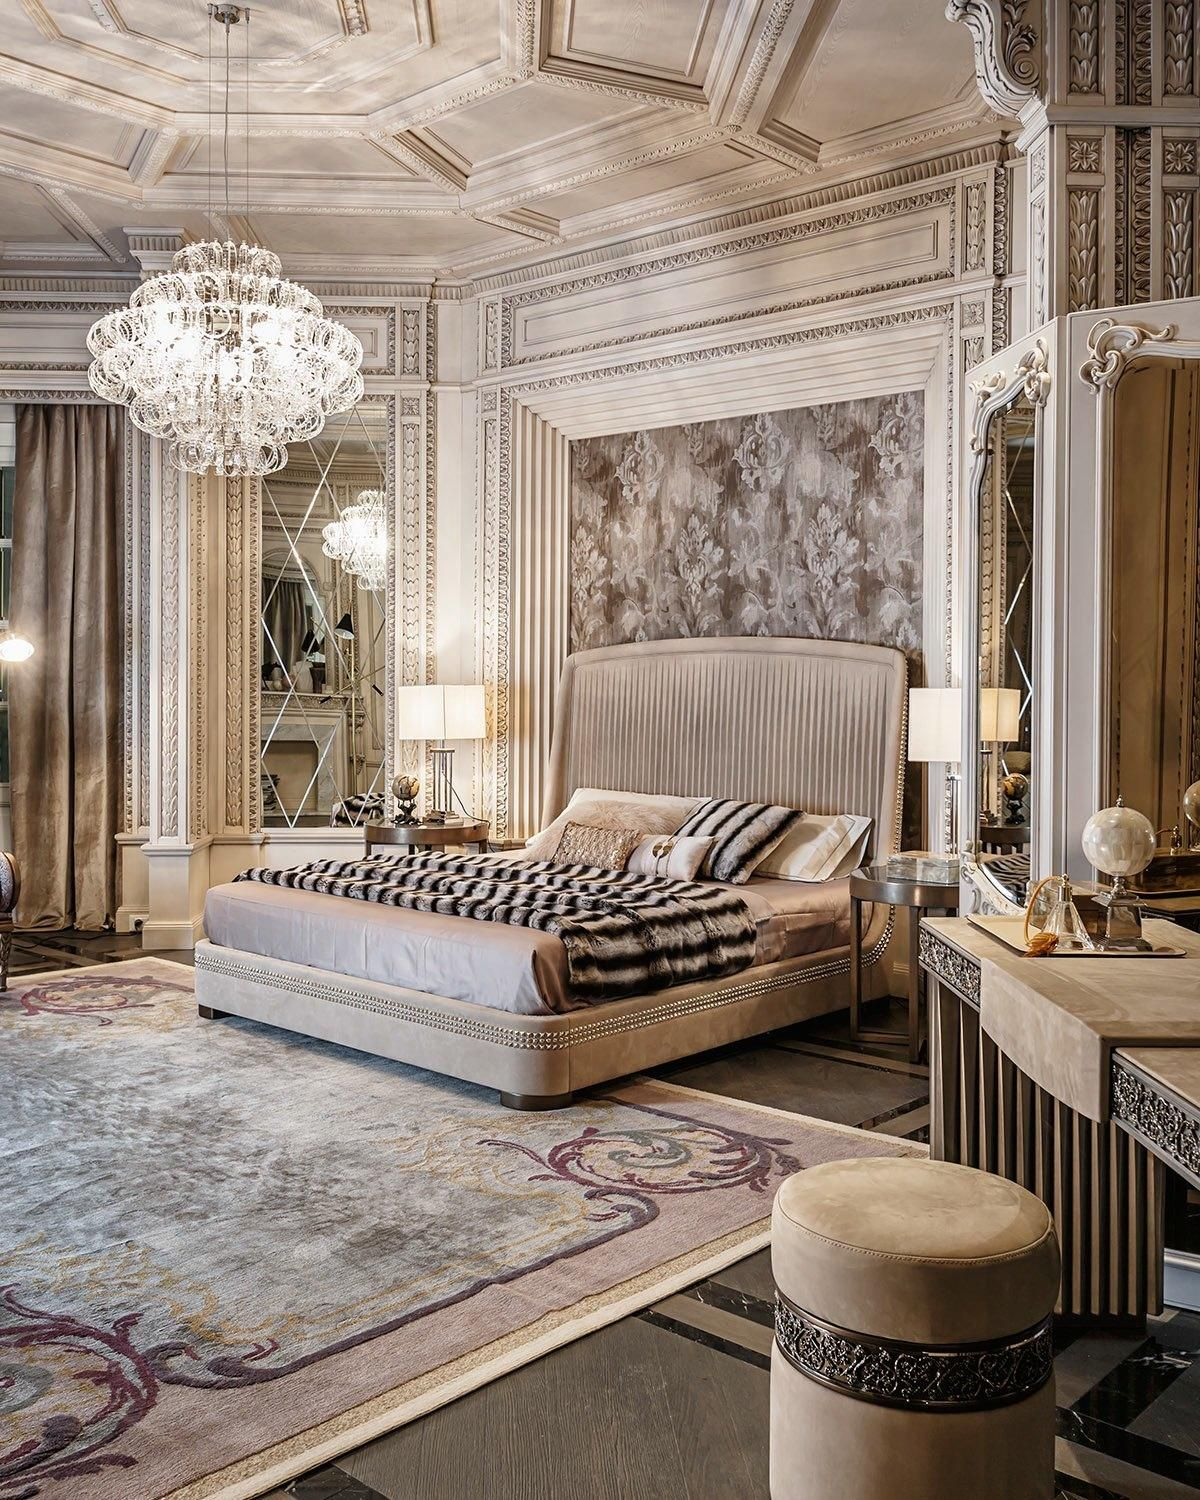 Opulent Art Deco Inspired Bedroom With A Beautiful Paneled Ceiling